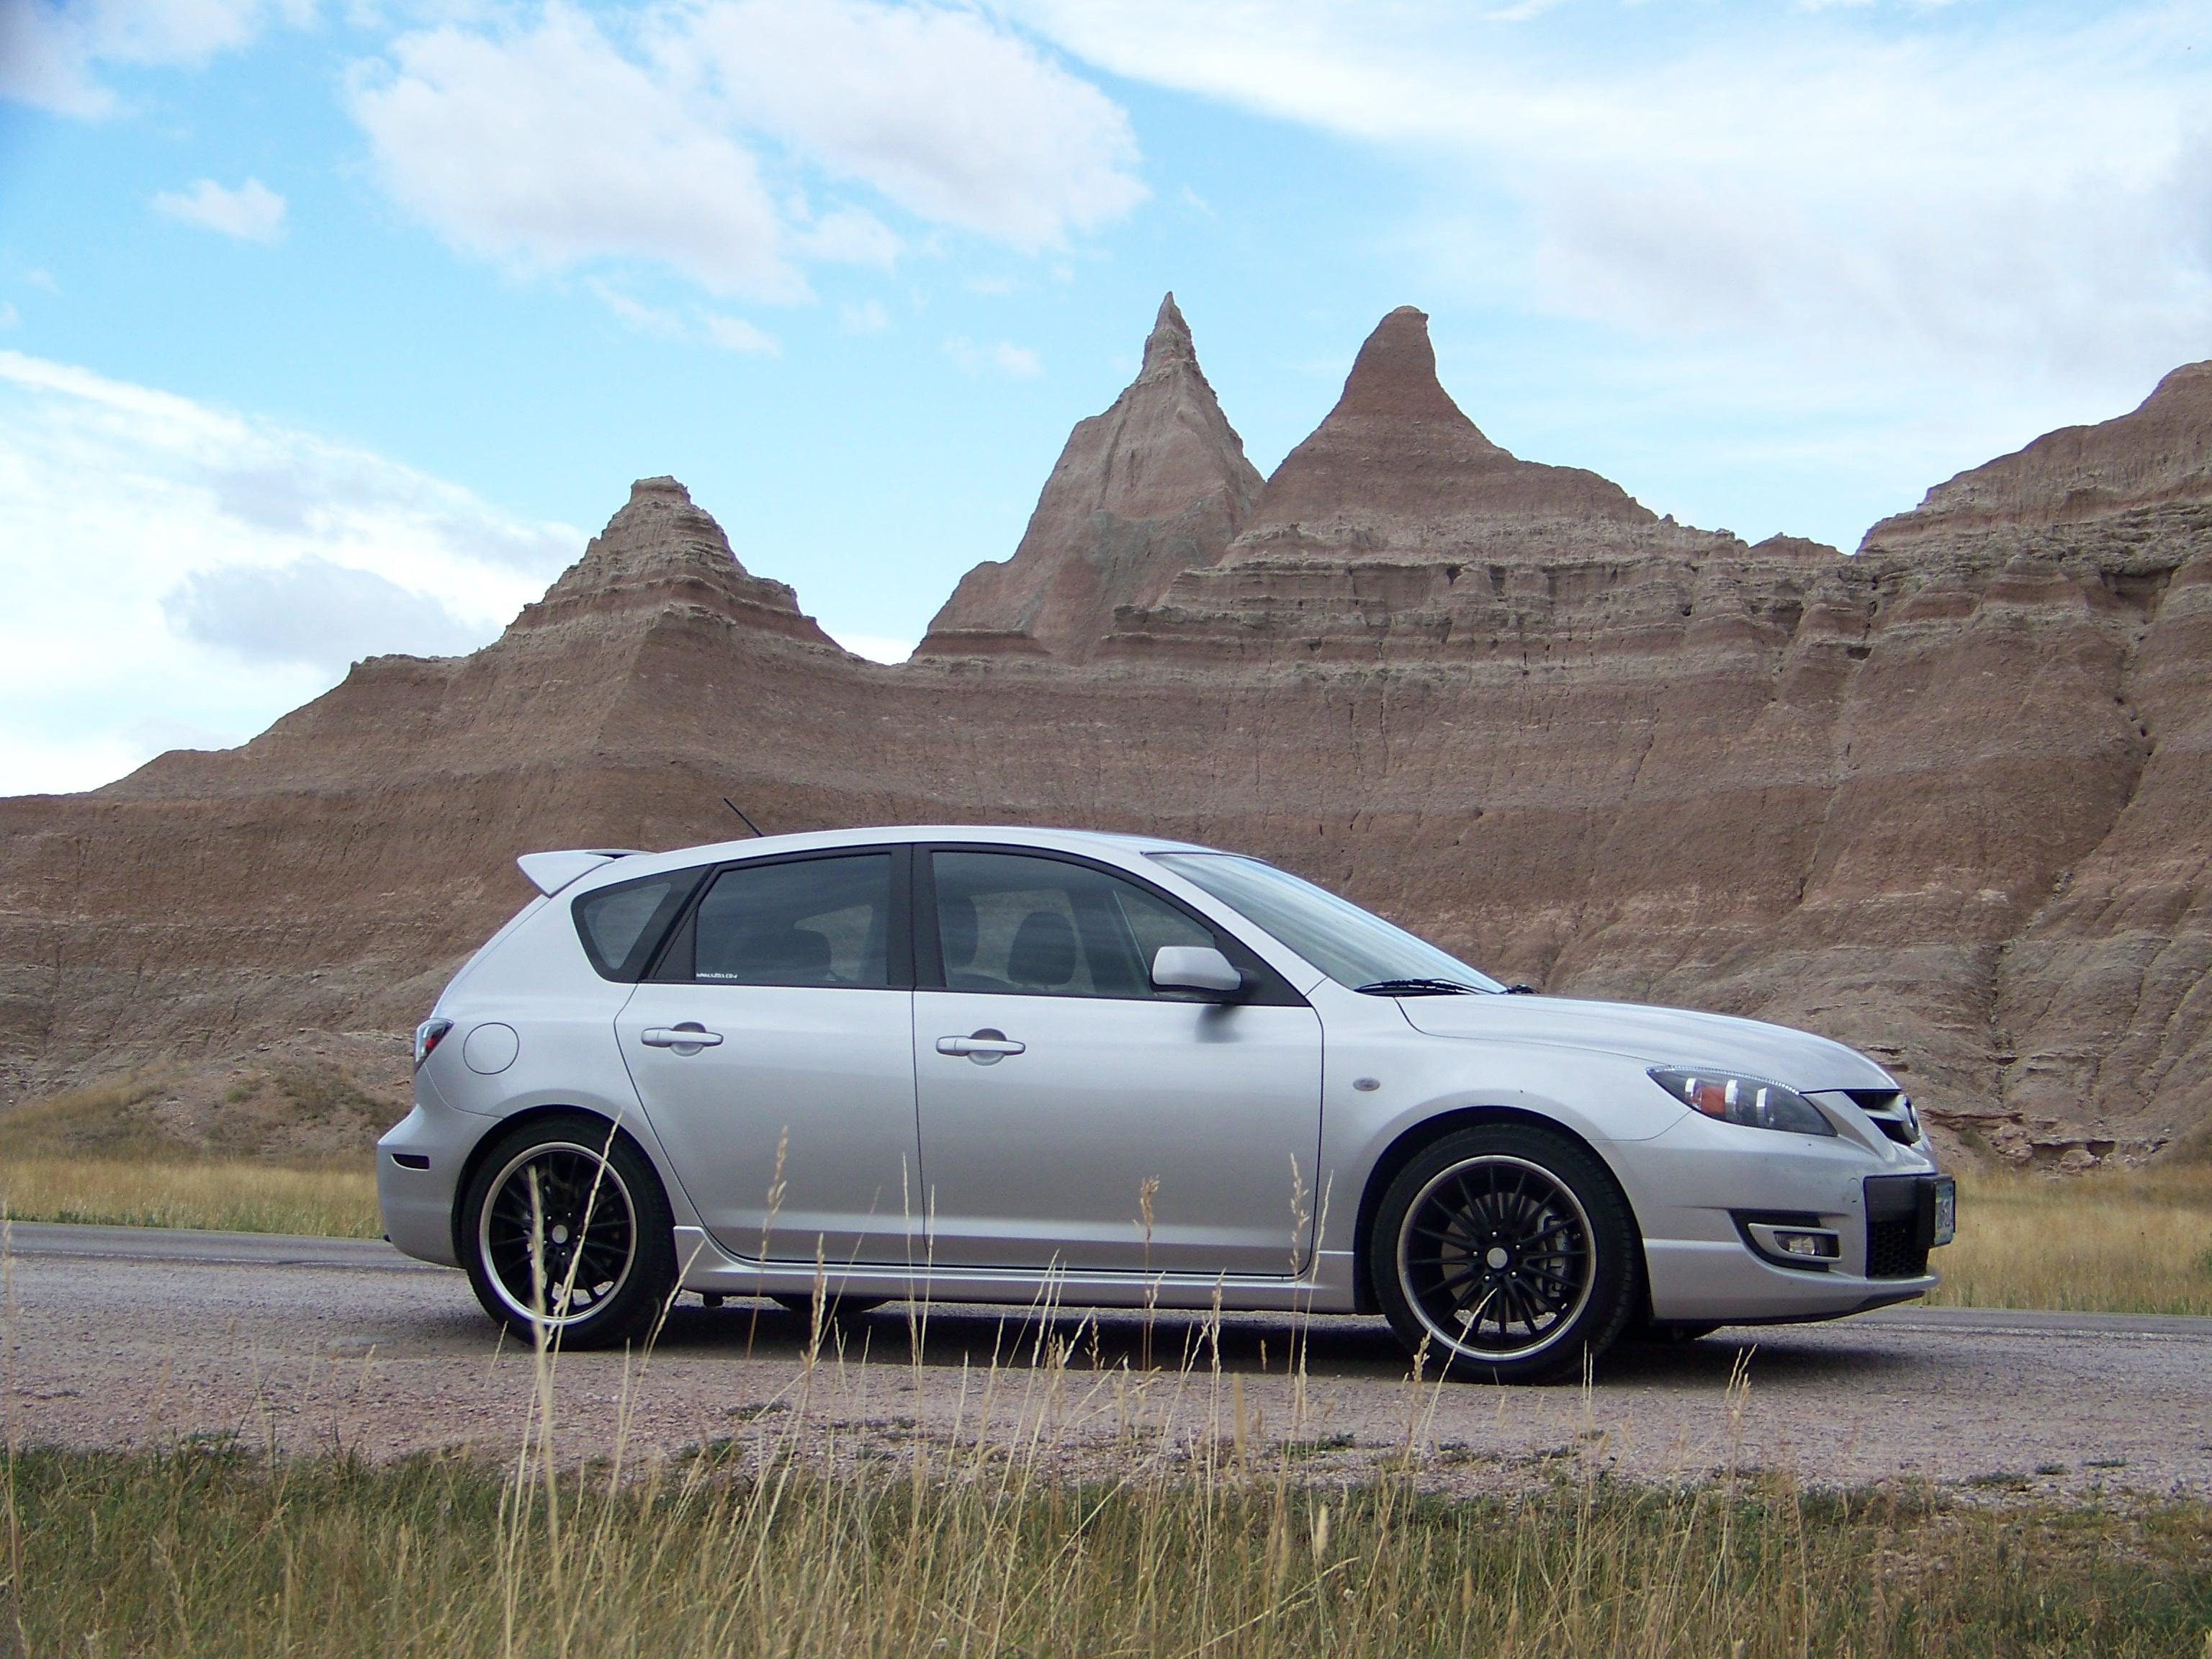 slim6 2008 mazda mazda3 specs, photos, modification info at cardomain